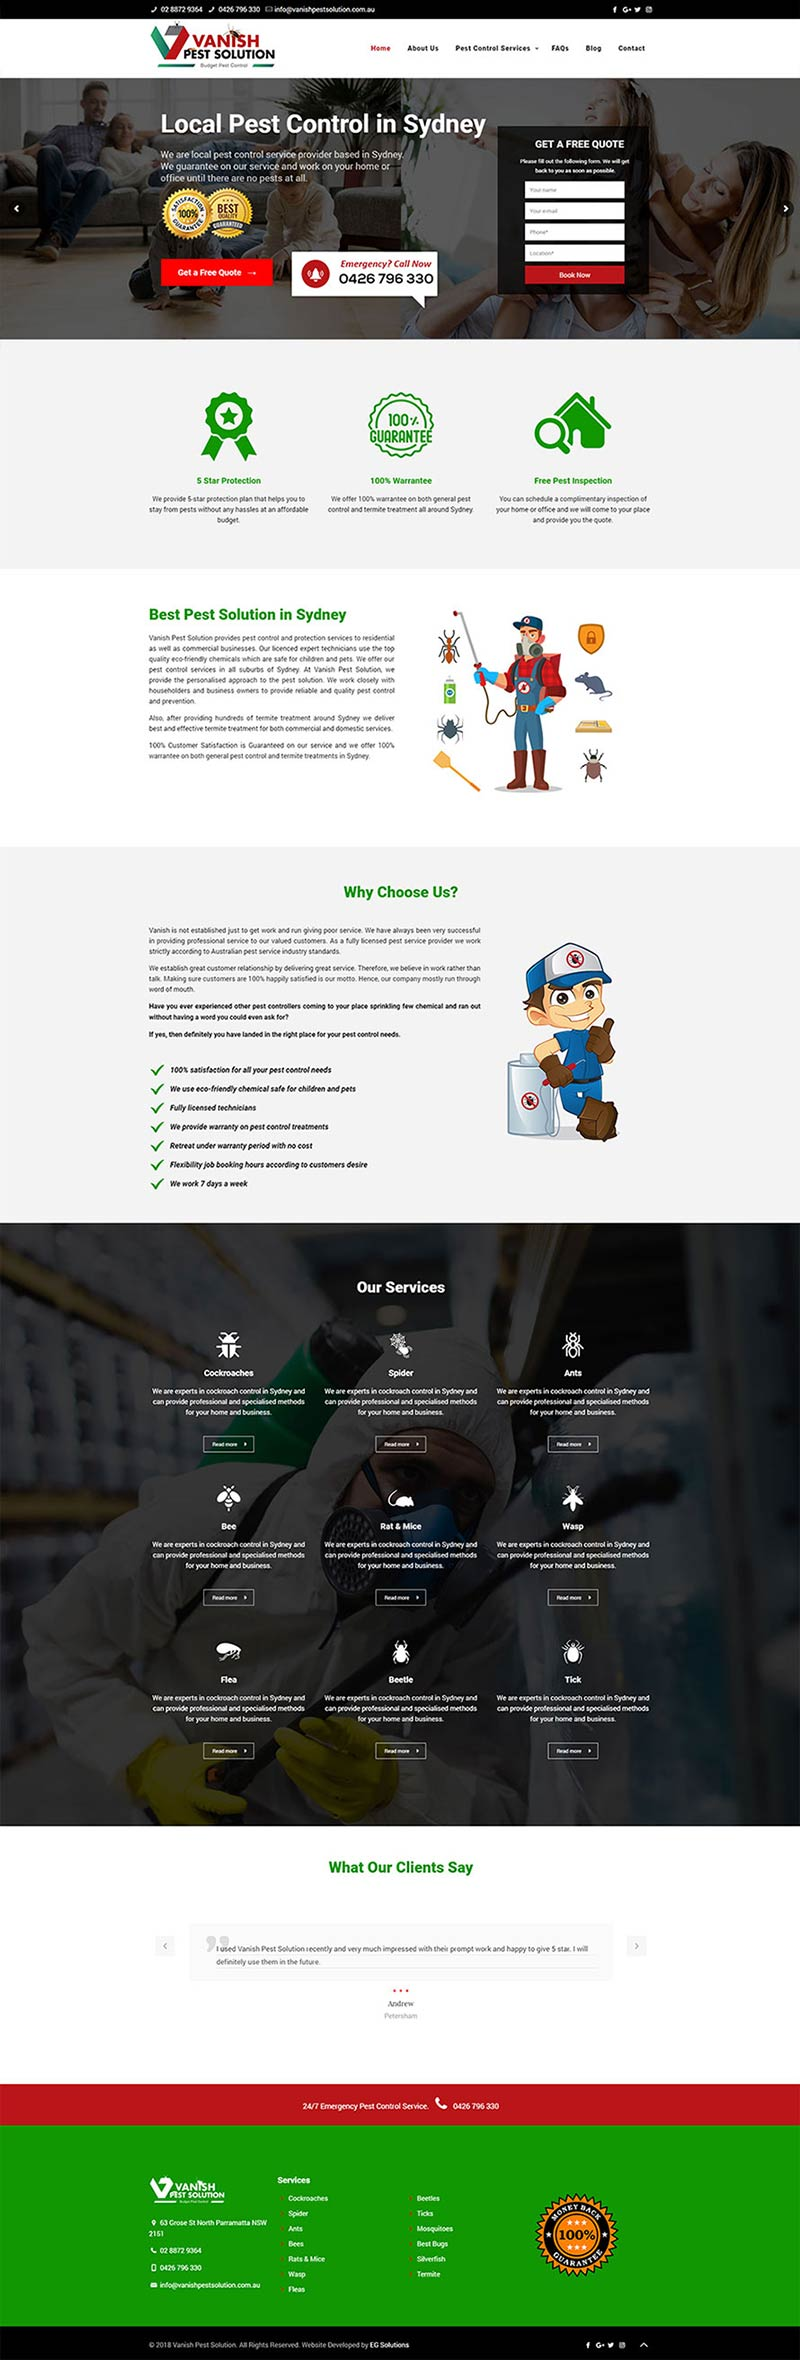 Home Page Design - Vanish Pest Solution